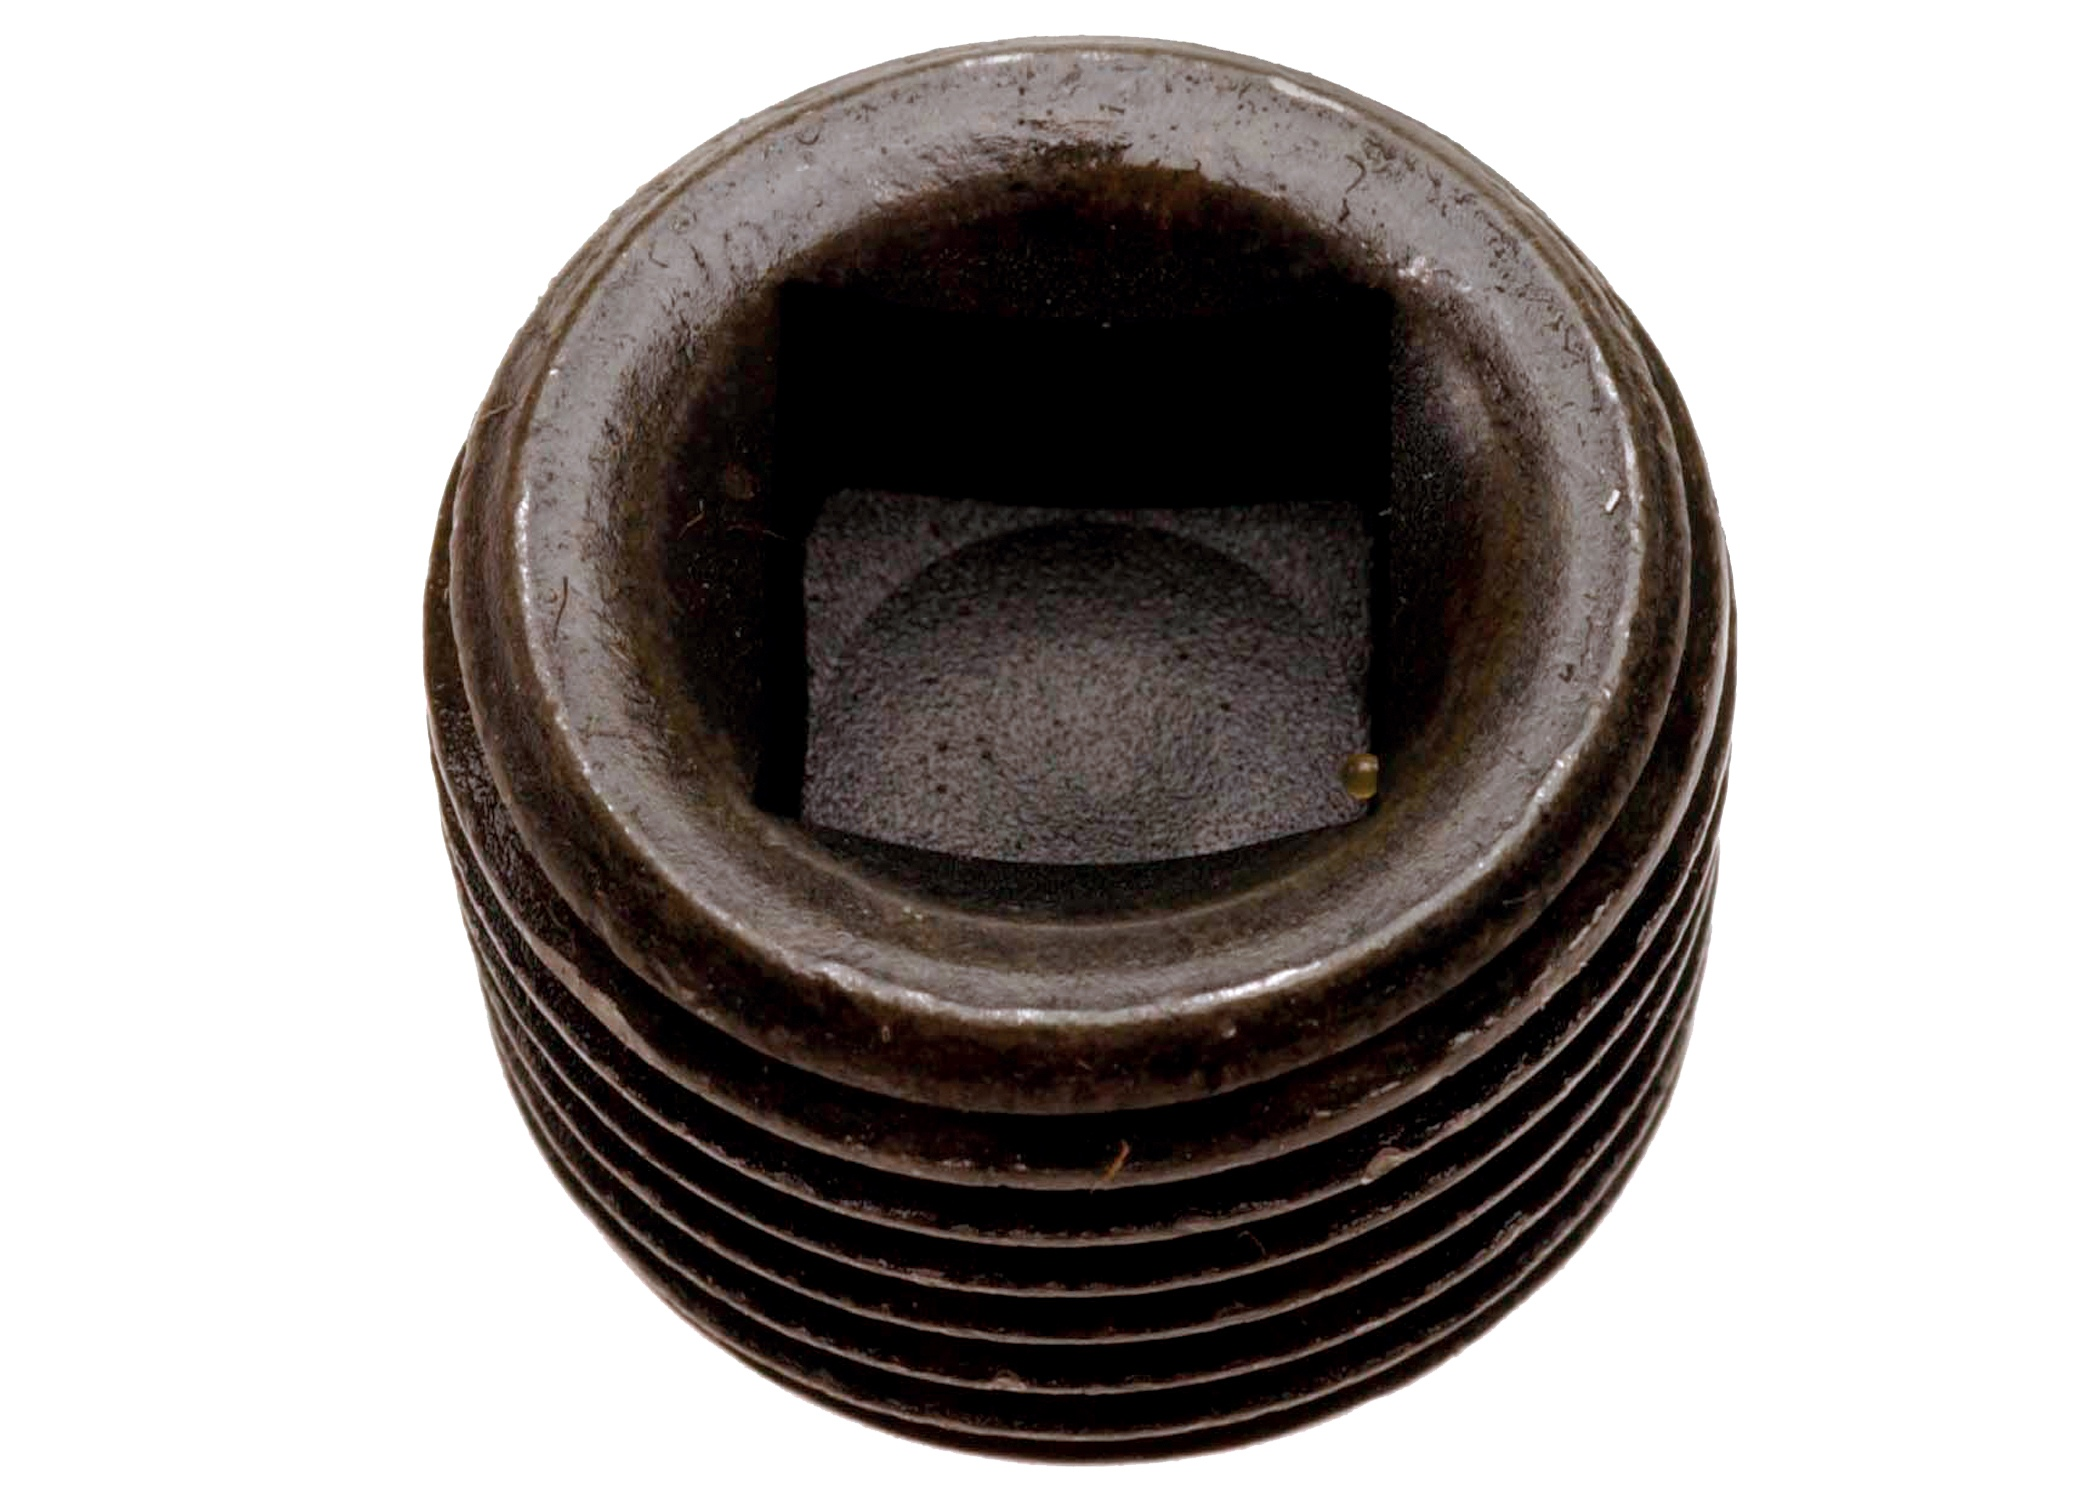 ACDELCO GM ORIGINAL EQUIPMENT - Transfer Case Oil Fill Plug - DCB 25522466